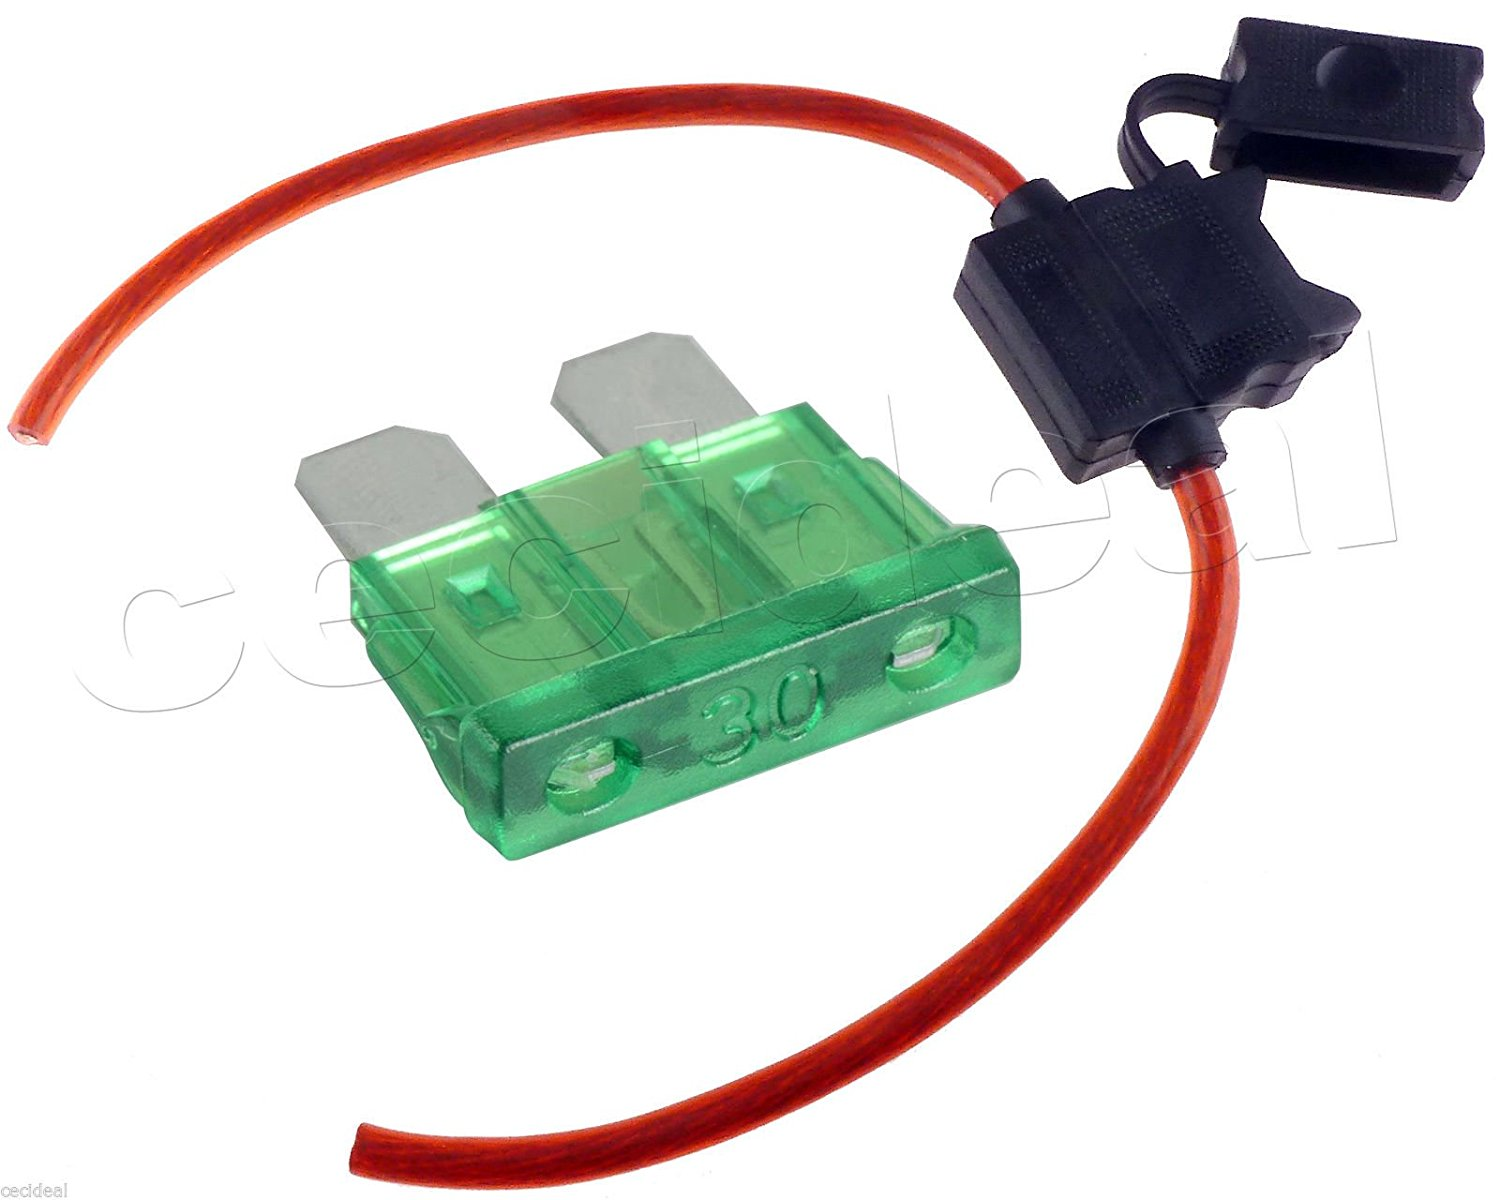 hight resolution of buy 8 gauge inline atc fuse holder with 30 amp fuse with cover new car truck